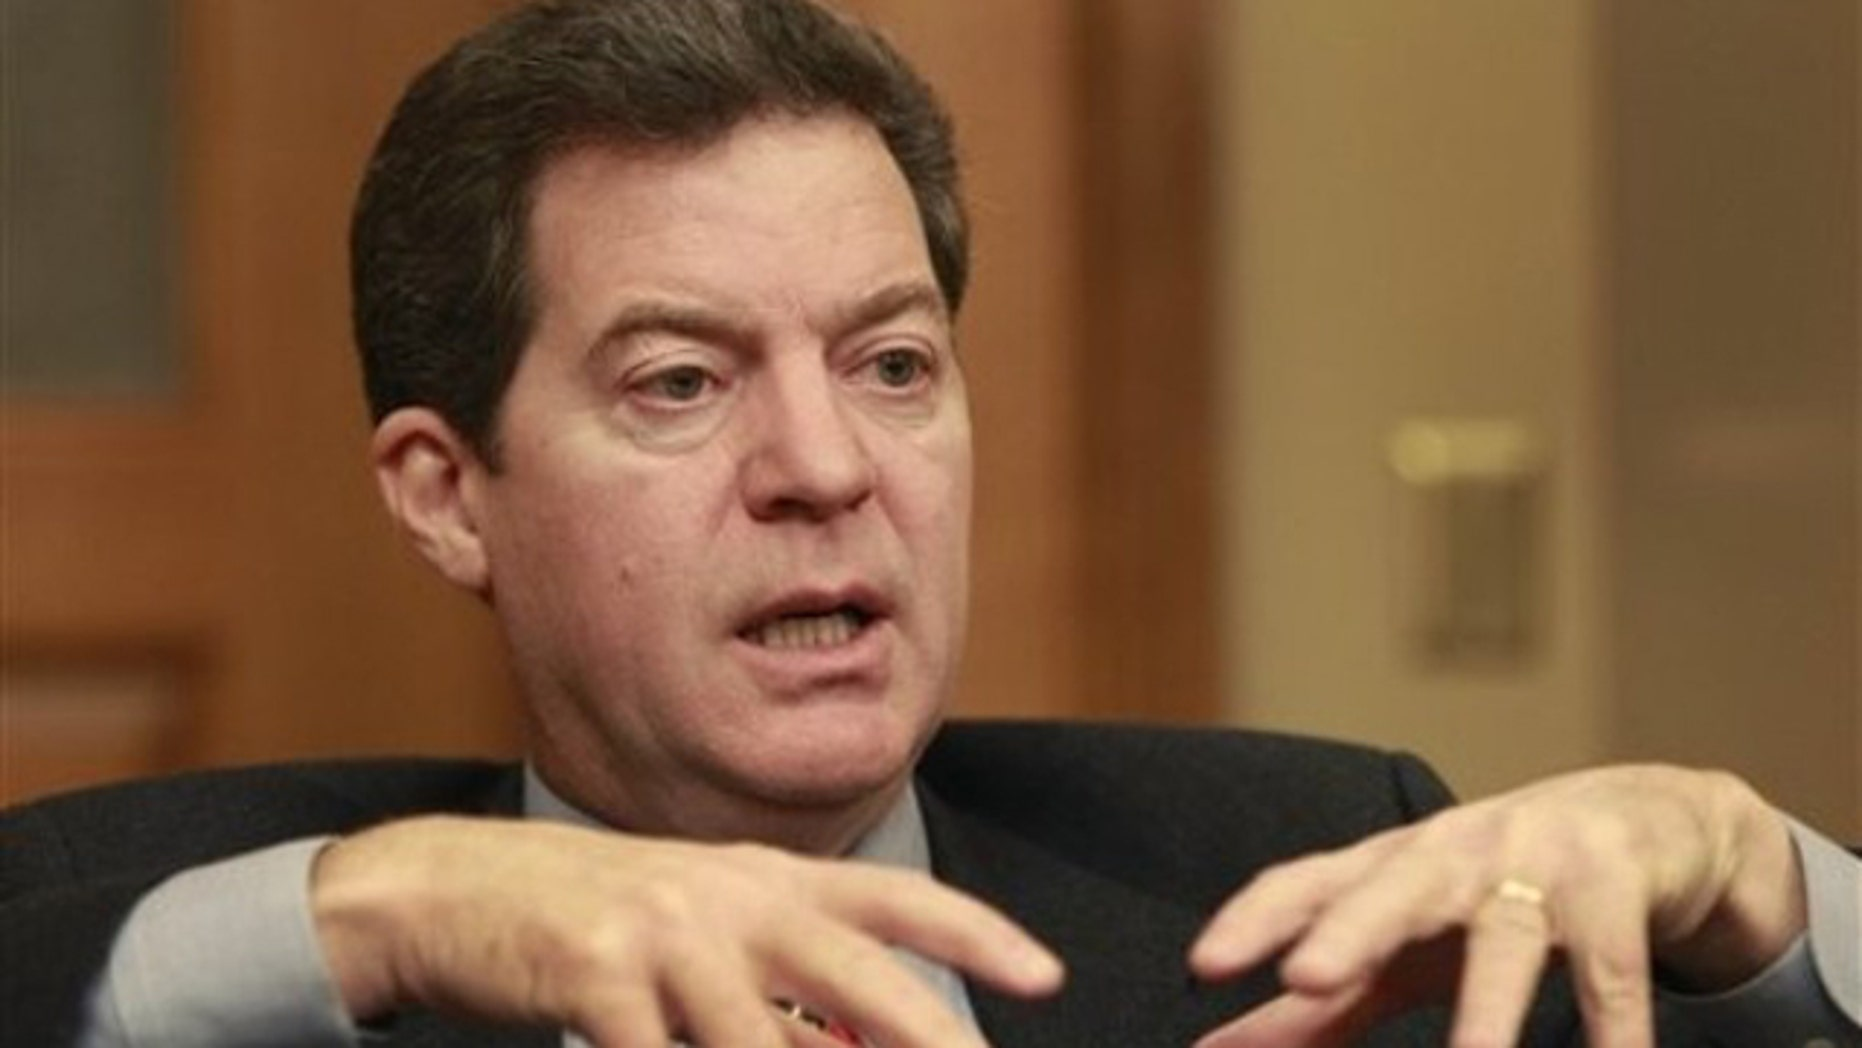 In this Dec. 21, 2010 photo, Kansas Gov. Sam Brownback is shown before taking office talking with a reporter in Topeka.